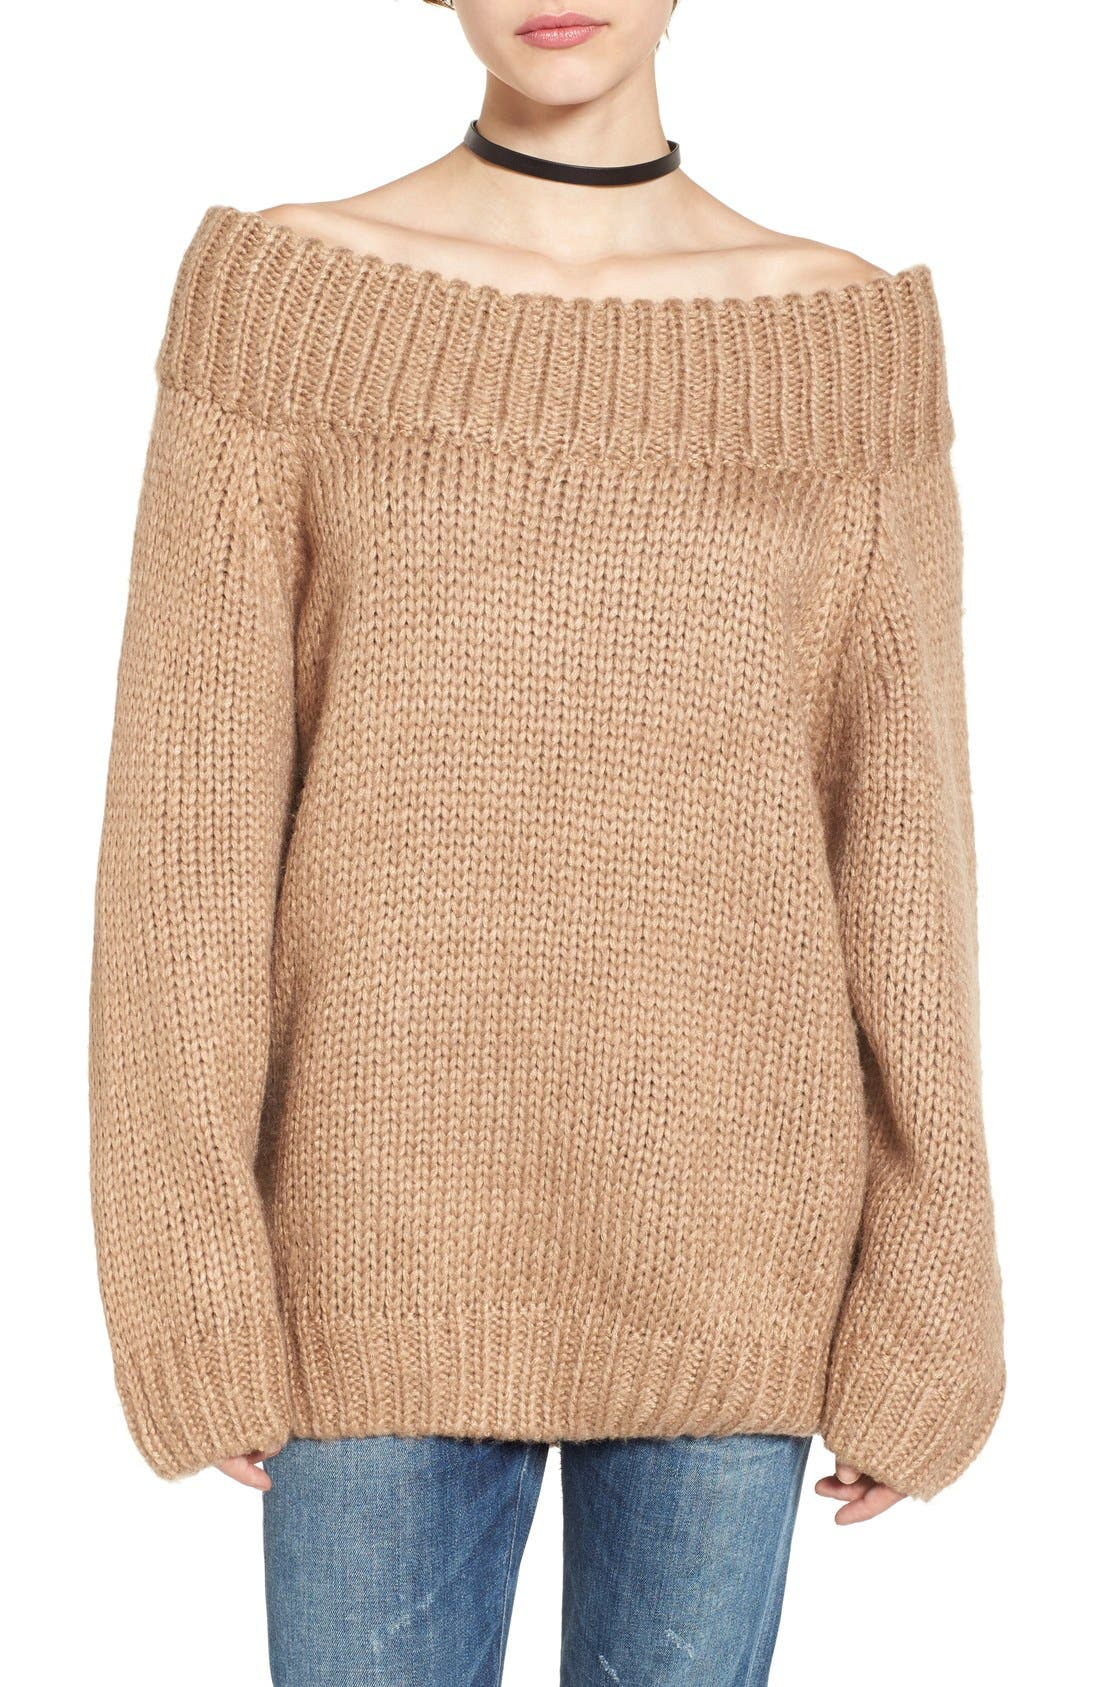 Alternate Image 1 Selected - Cotton Emporium Off the Shoulder Knit Pullover